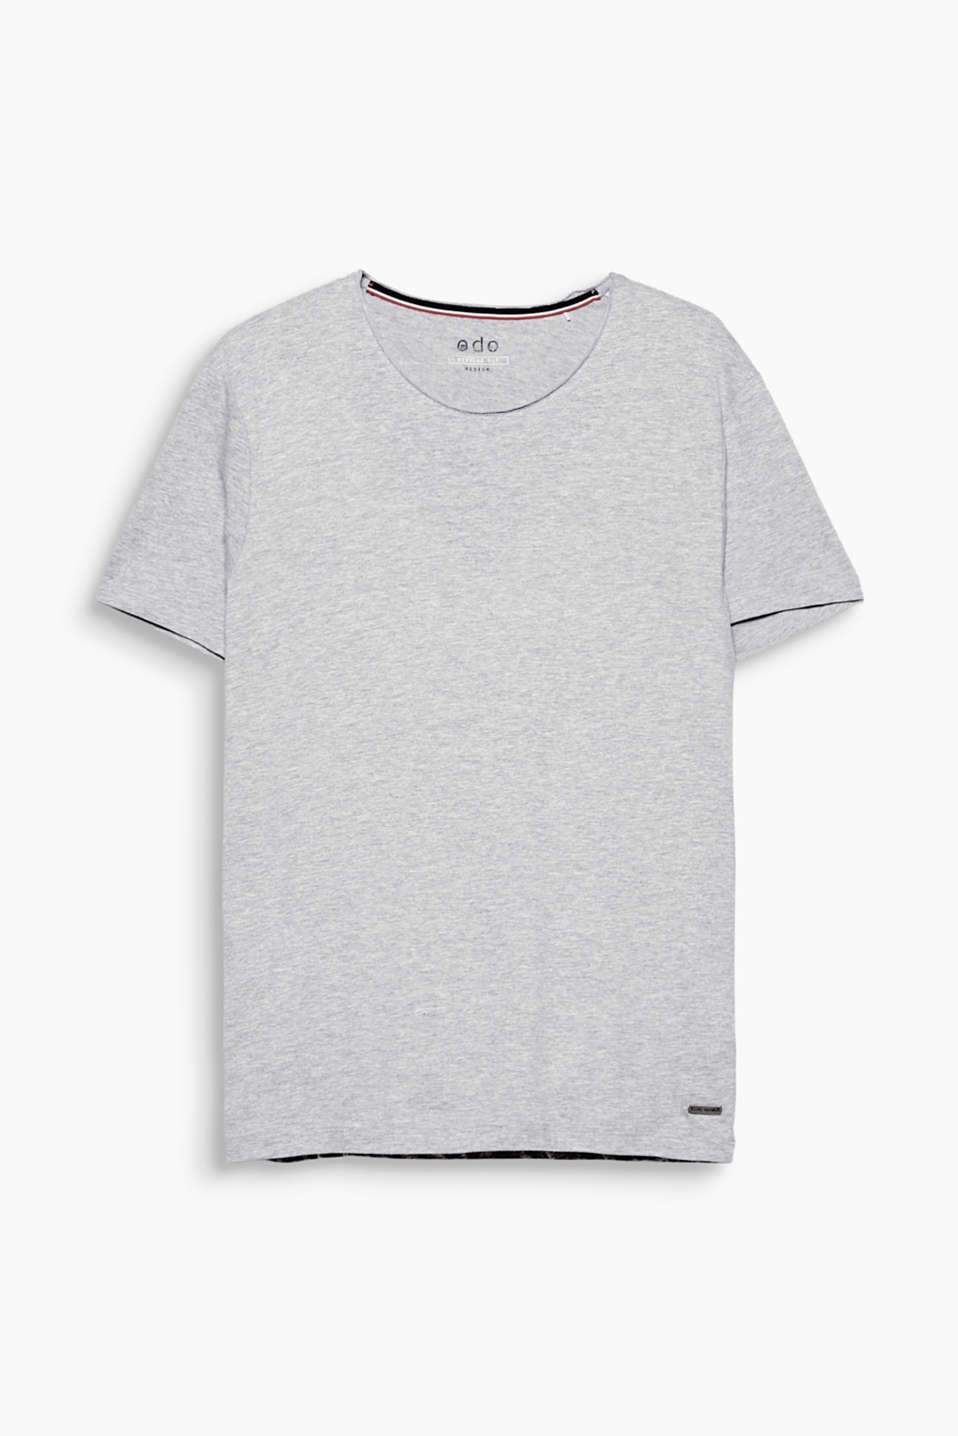 Your fashion basic: T-shirt with round neckline made of environmentally friendly, premium organic cotton.